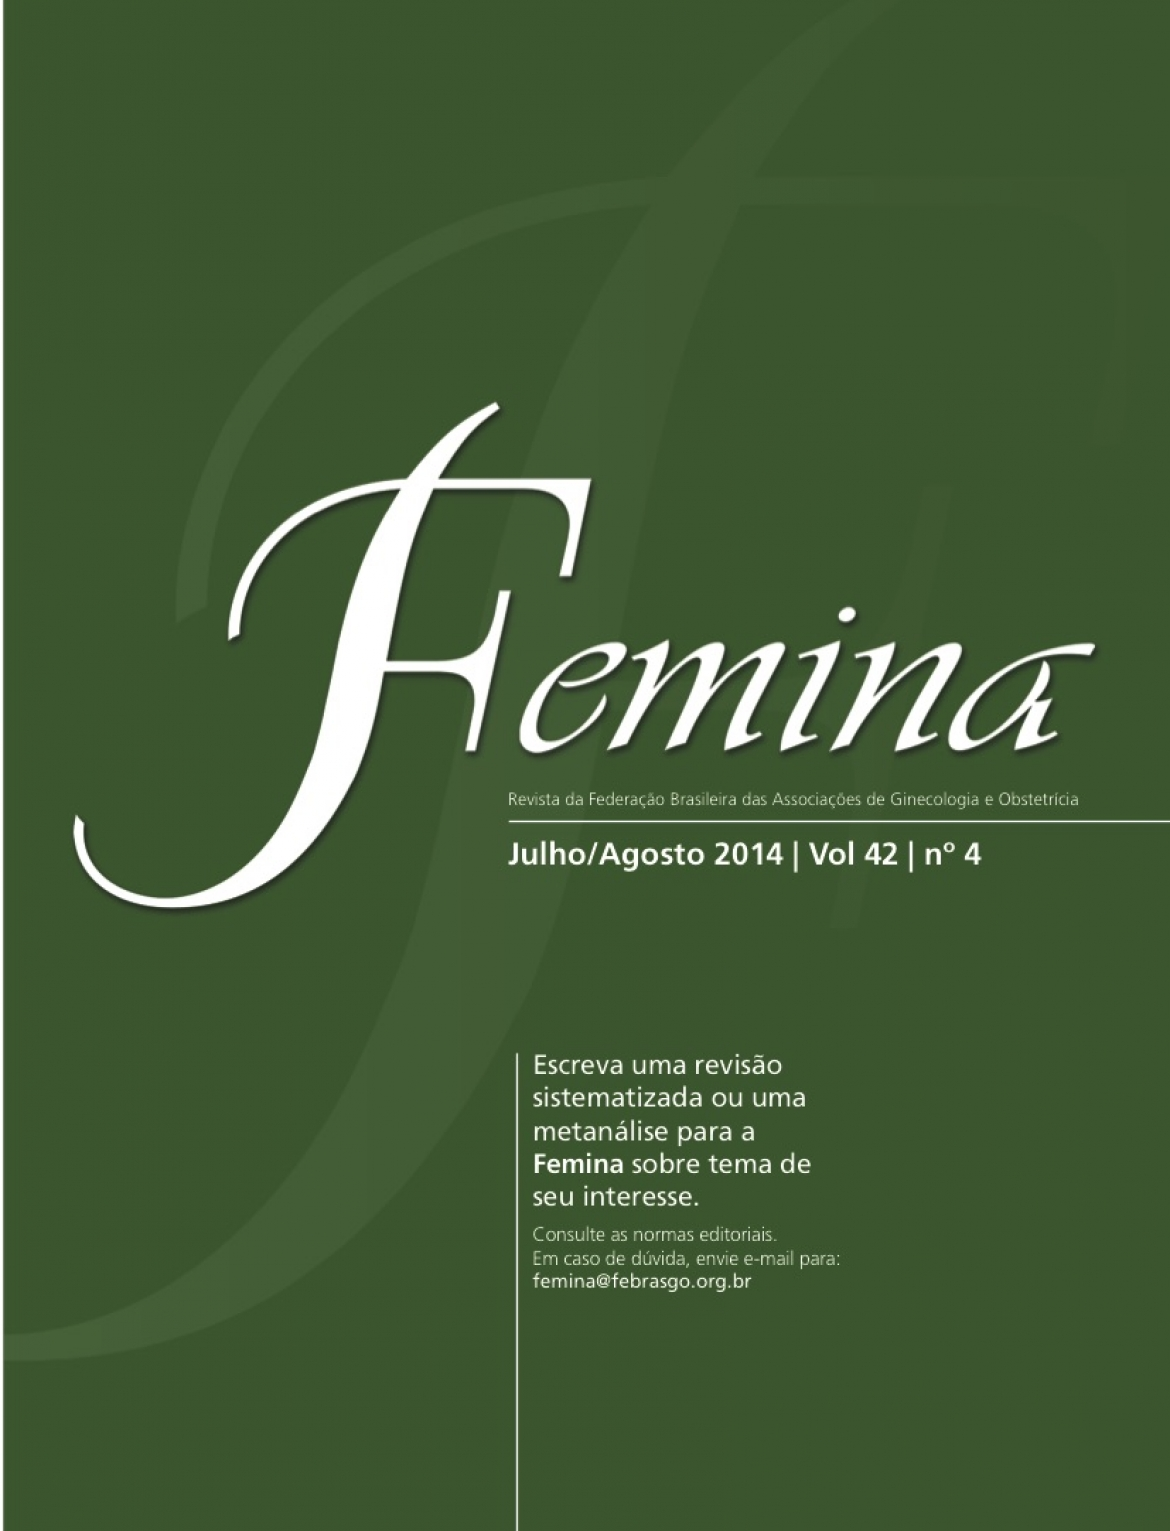 Revista Femina – 2014 | vol 42 | nº 4